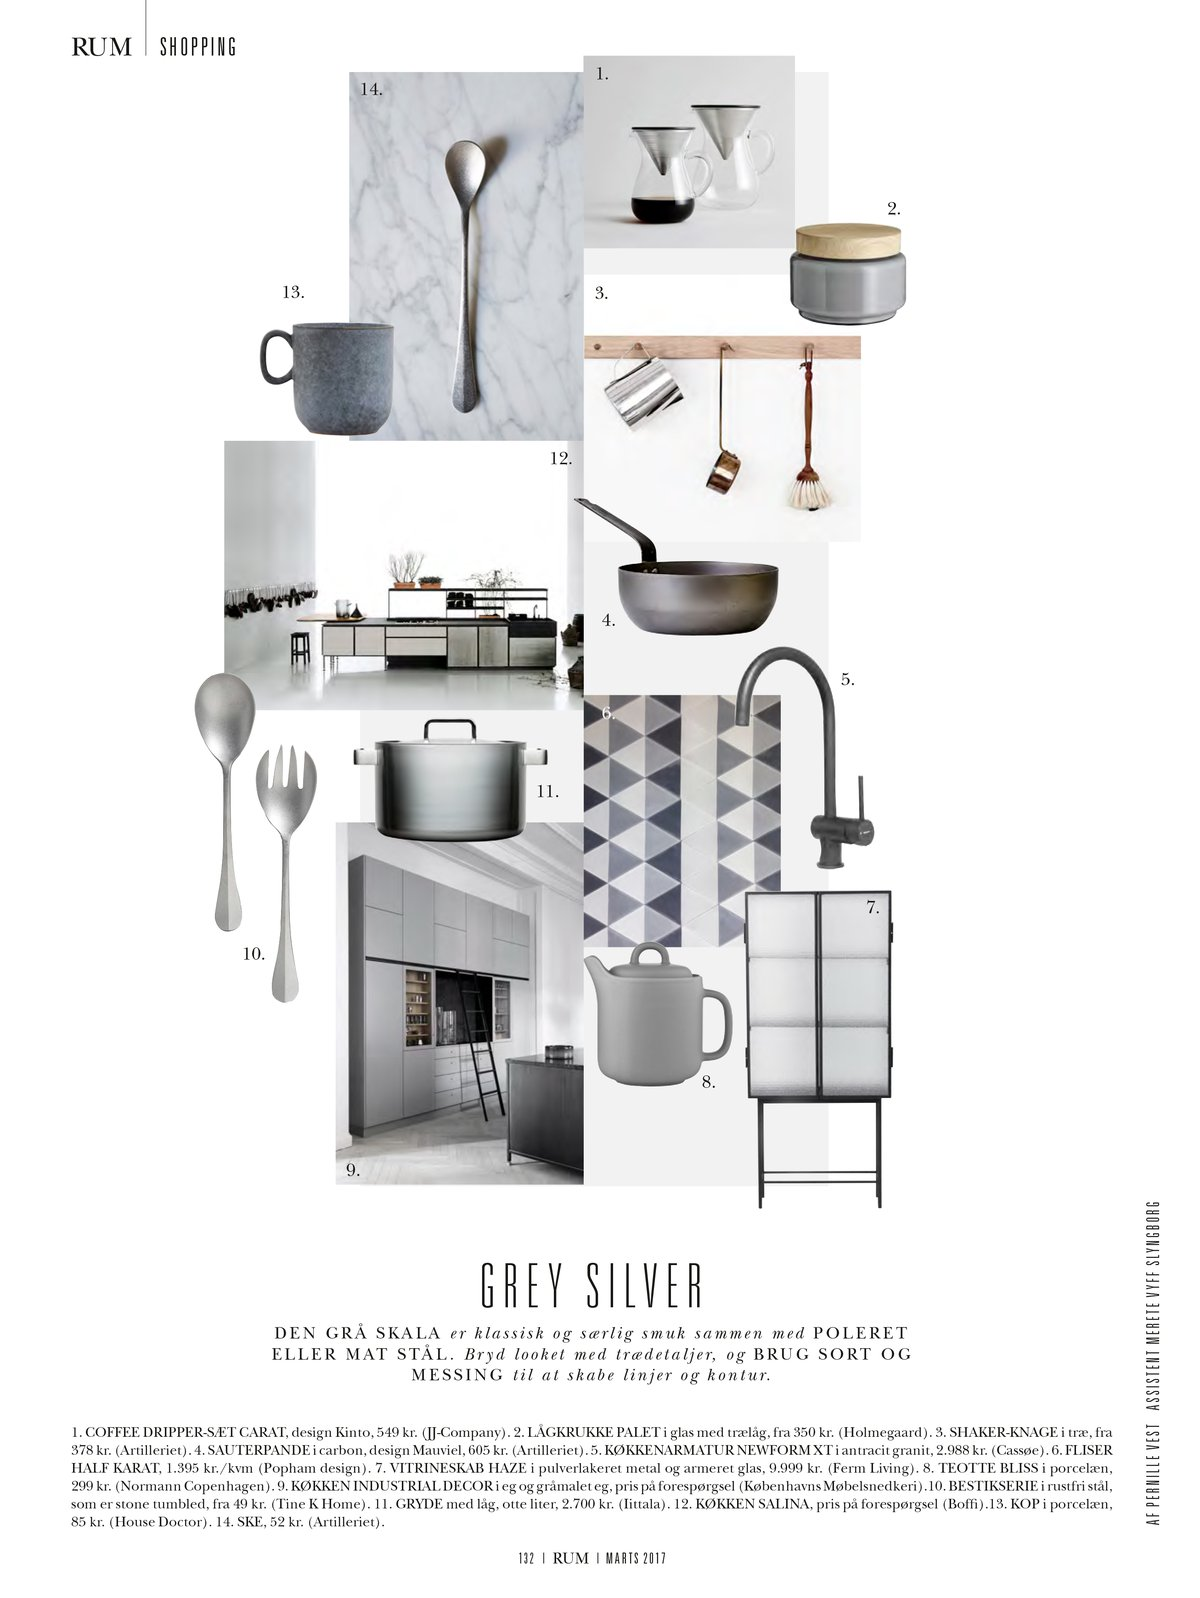 tinekhome CUT salad set in the Danish Interior magazine RUM